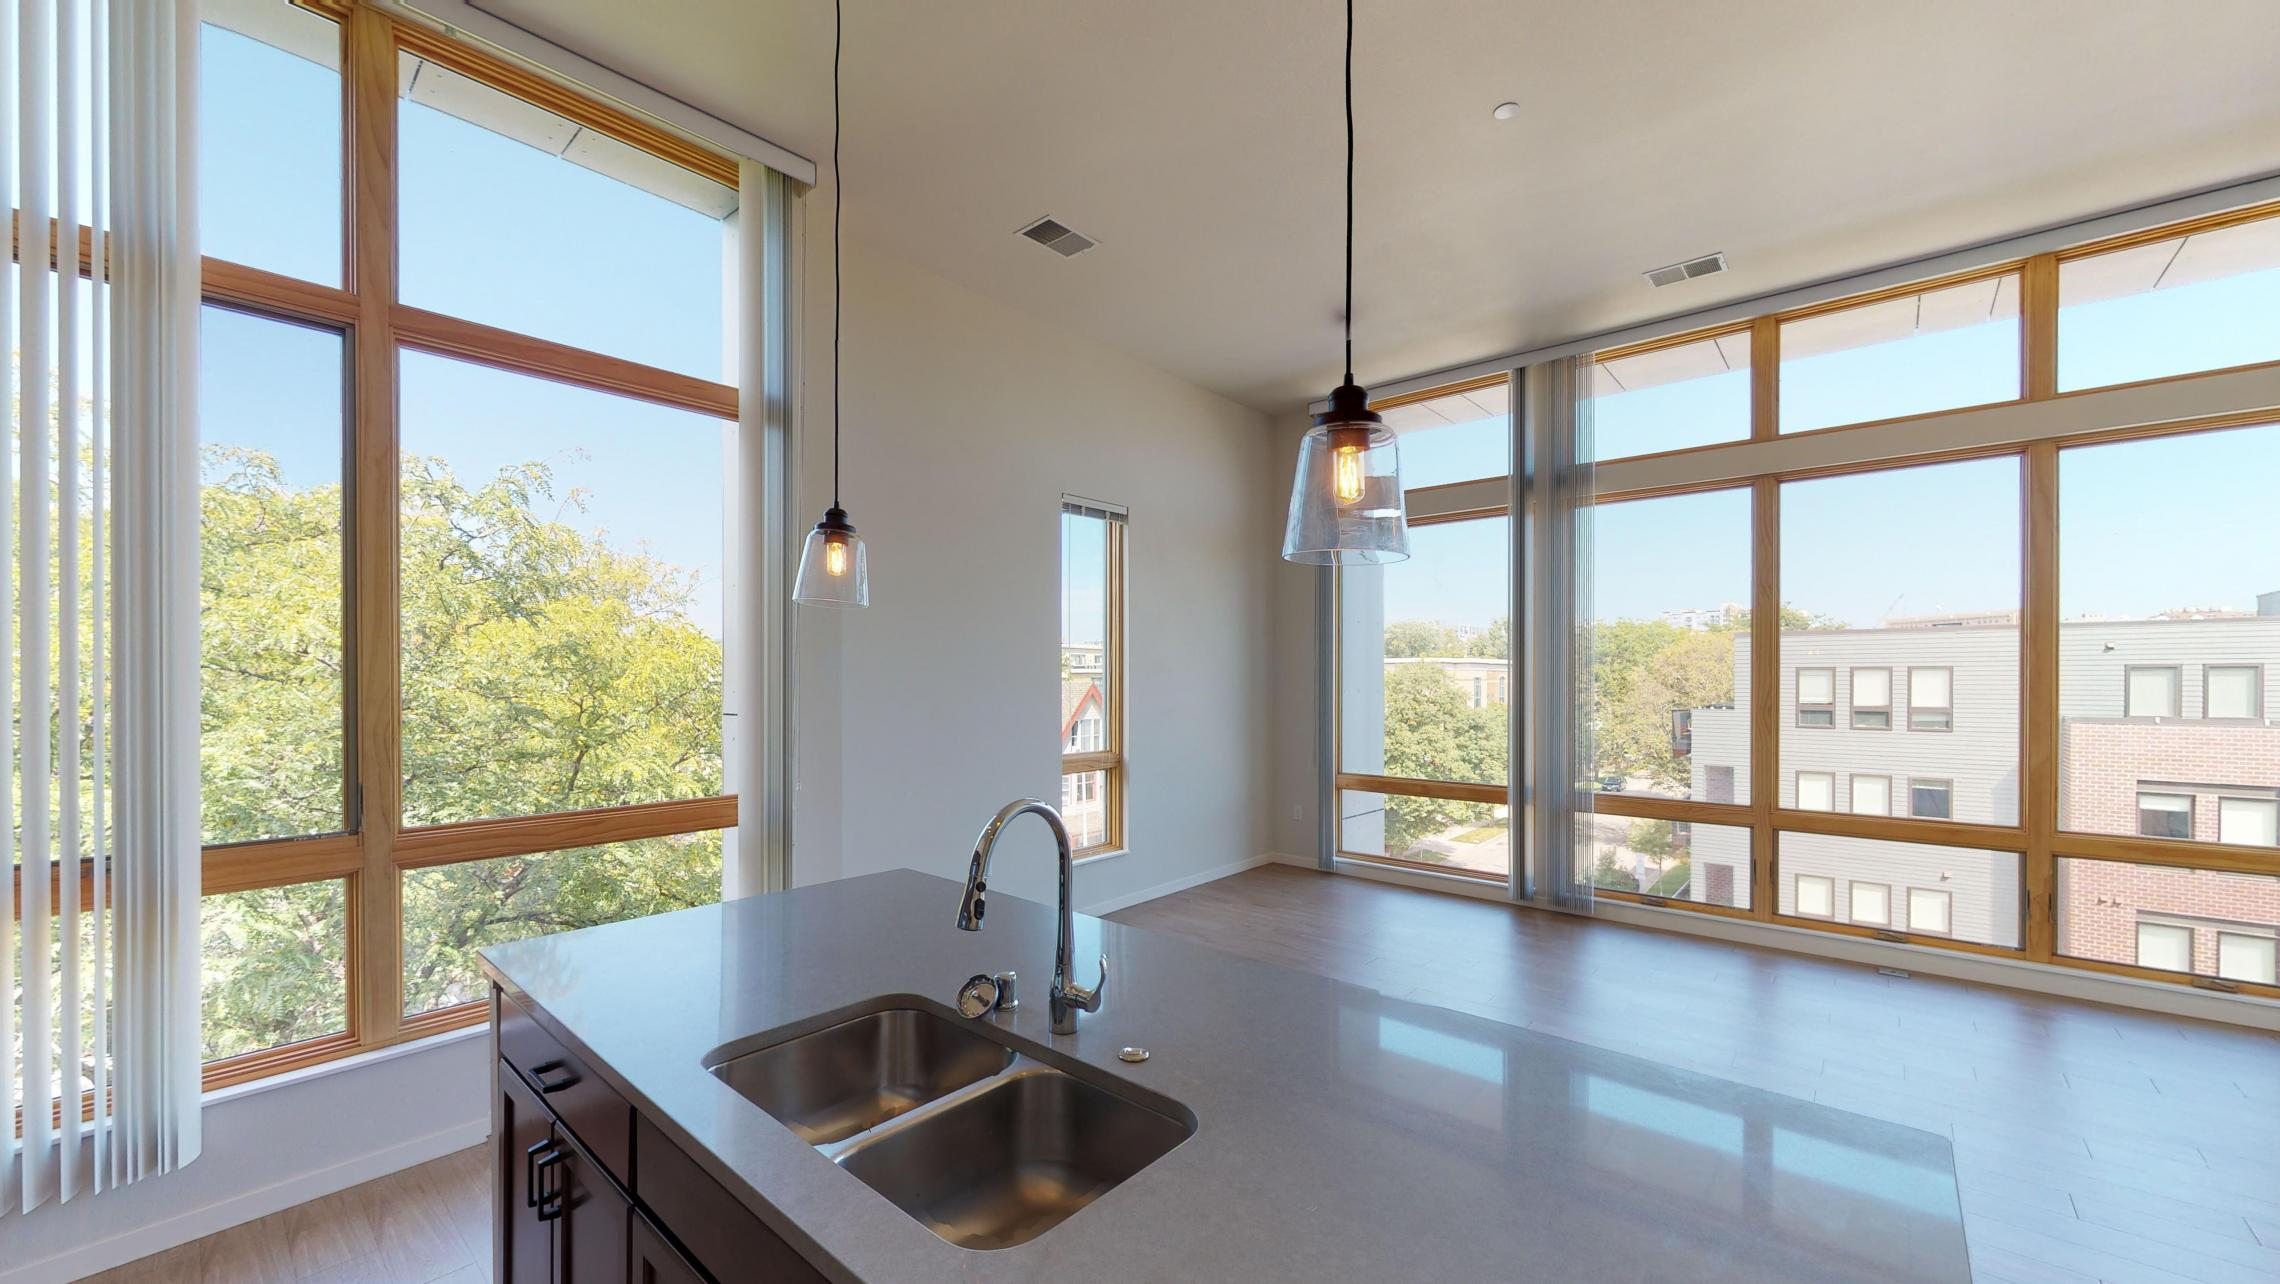 Quarter-Row-Apartments-Downtown-Madison-Monona-By-Lake-Capitol-Views-Coffee-Work-Space-Shuffleboard-Games-Modern-Luxury-Design-Apartment-415-Two-Bedroom